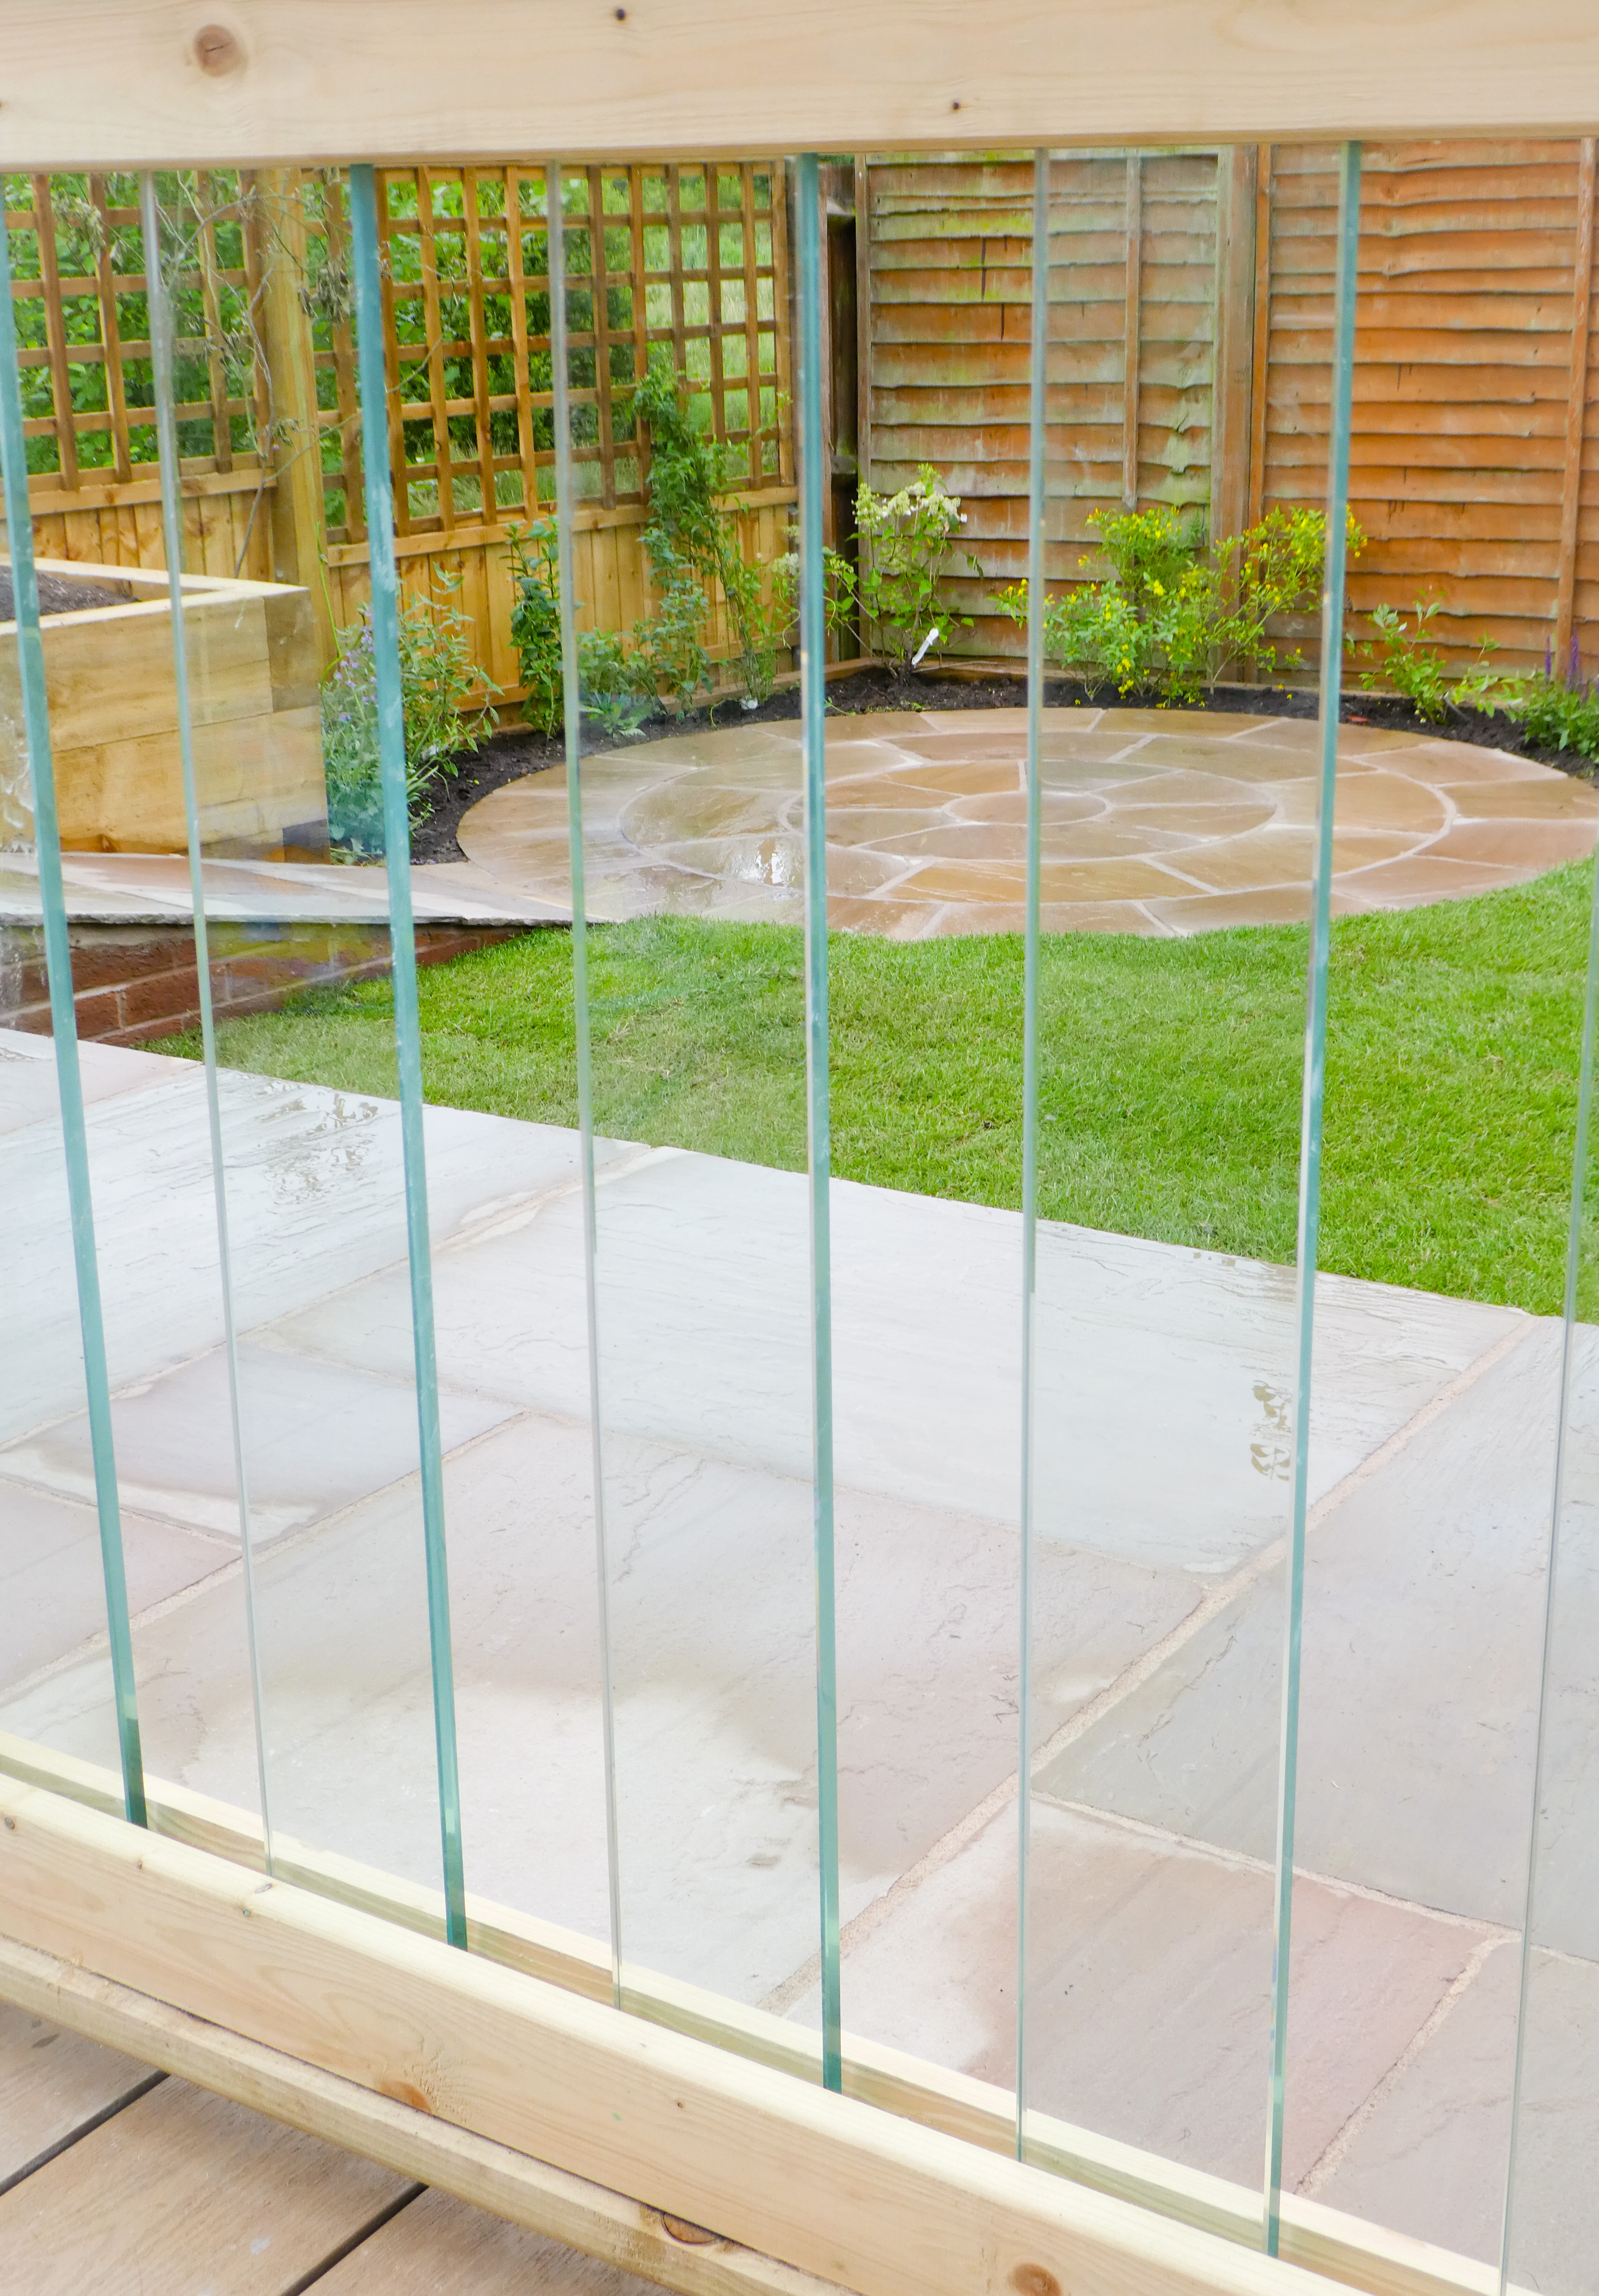 Landscaping in Timbersbrook